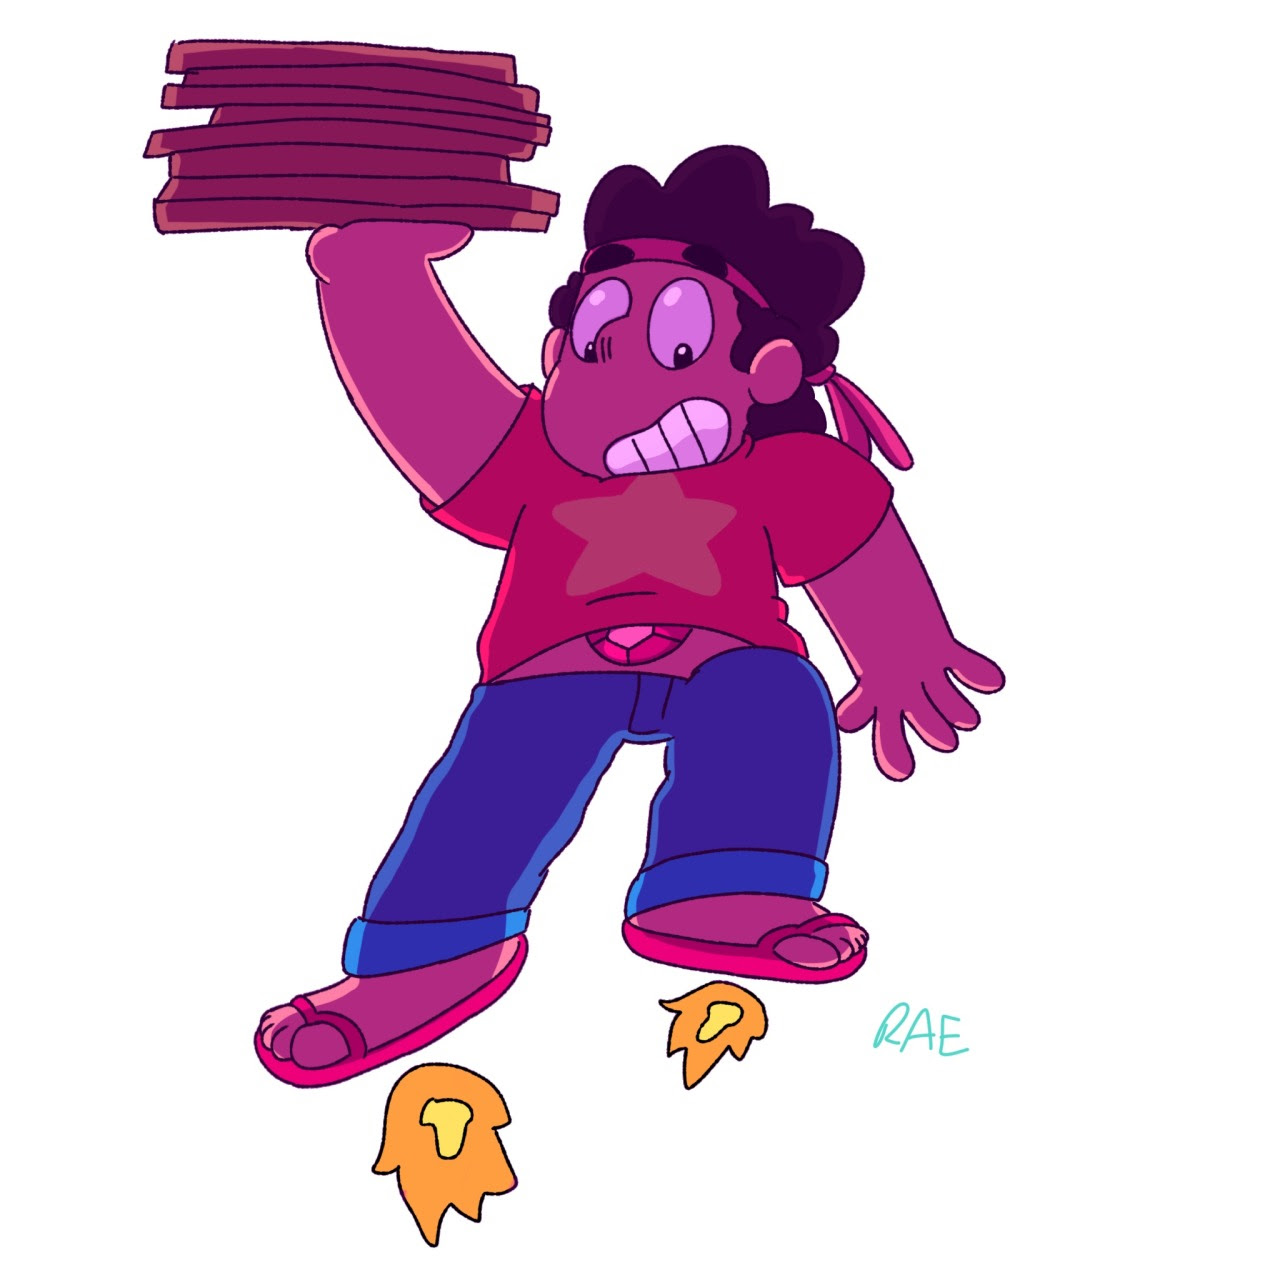 Kiki's Pizza Delivery Service. Im actually looking forward to this episode, apparently its supposed to be emotional. I just hope the gems make an appearance.